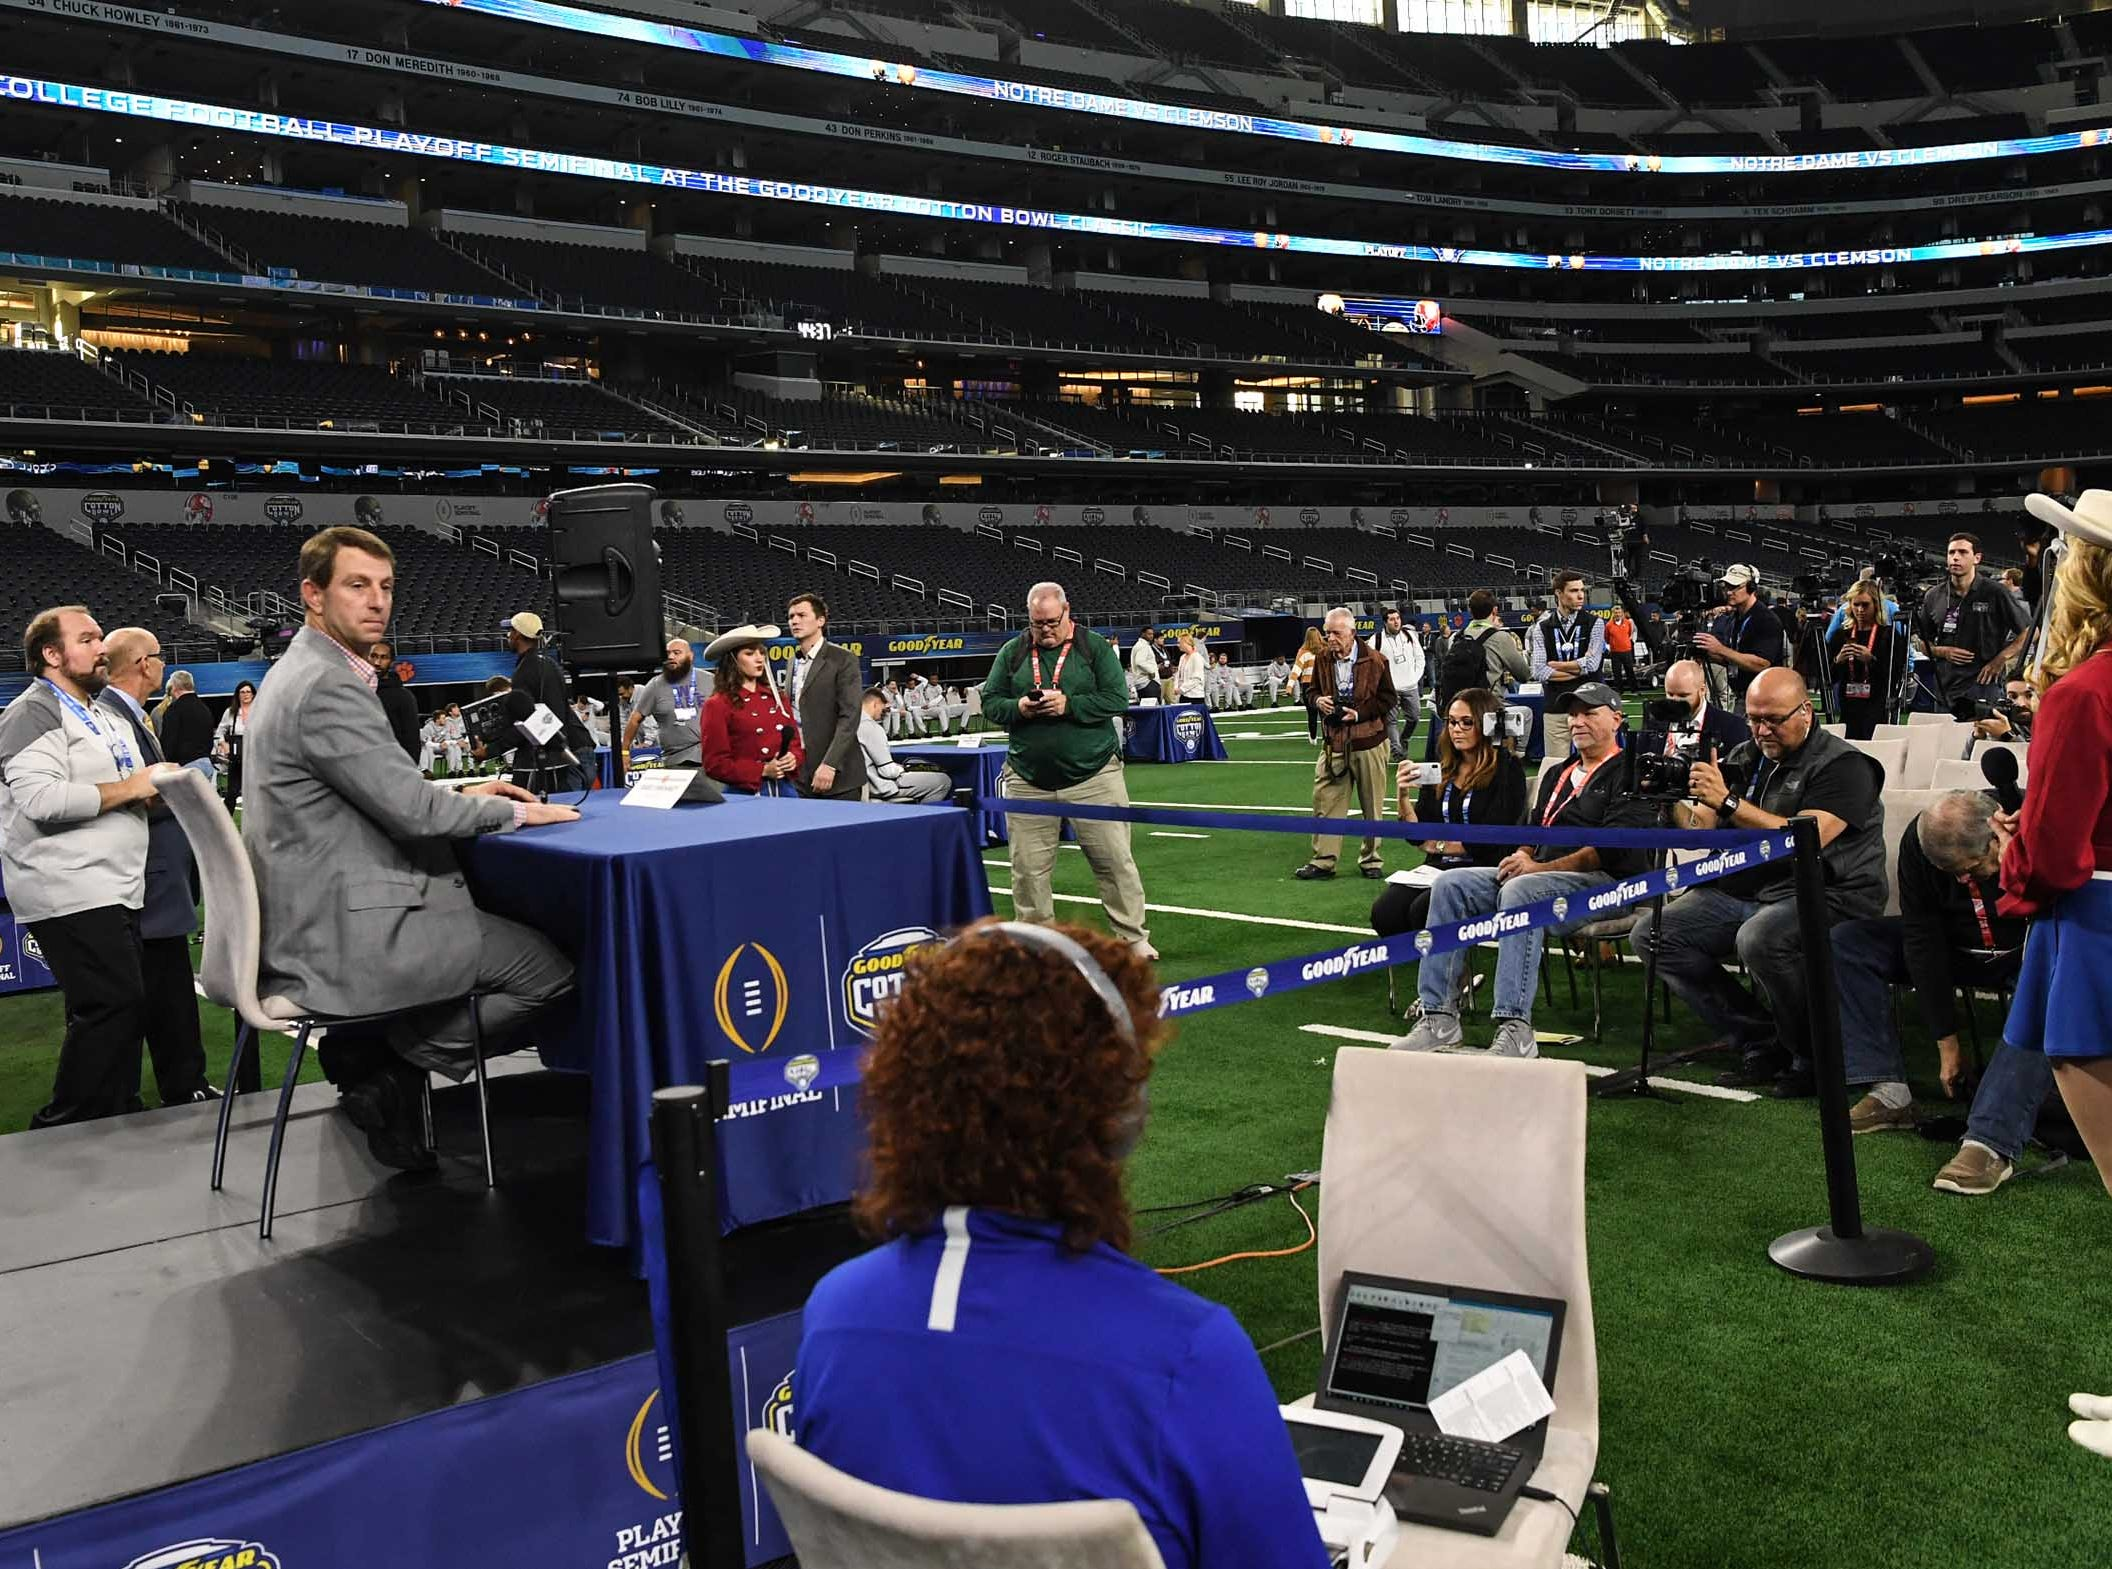 Clemson Head Coach Dabo Swinney during Media Day for Clemson and Notre Dame at the AT&T Stadium in Dallas December 27, 2018.